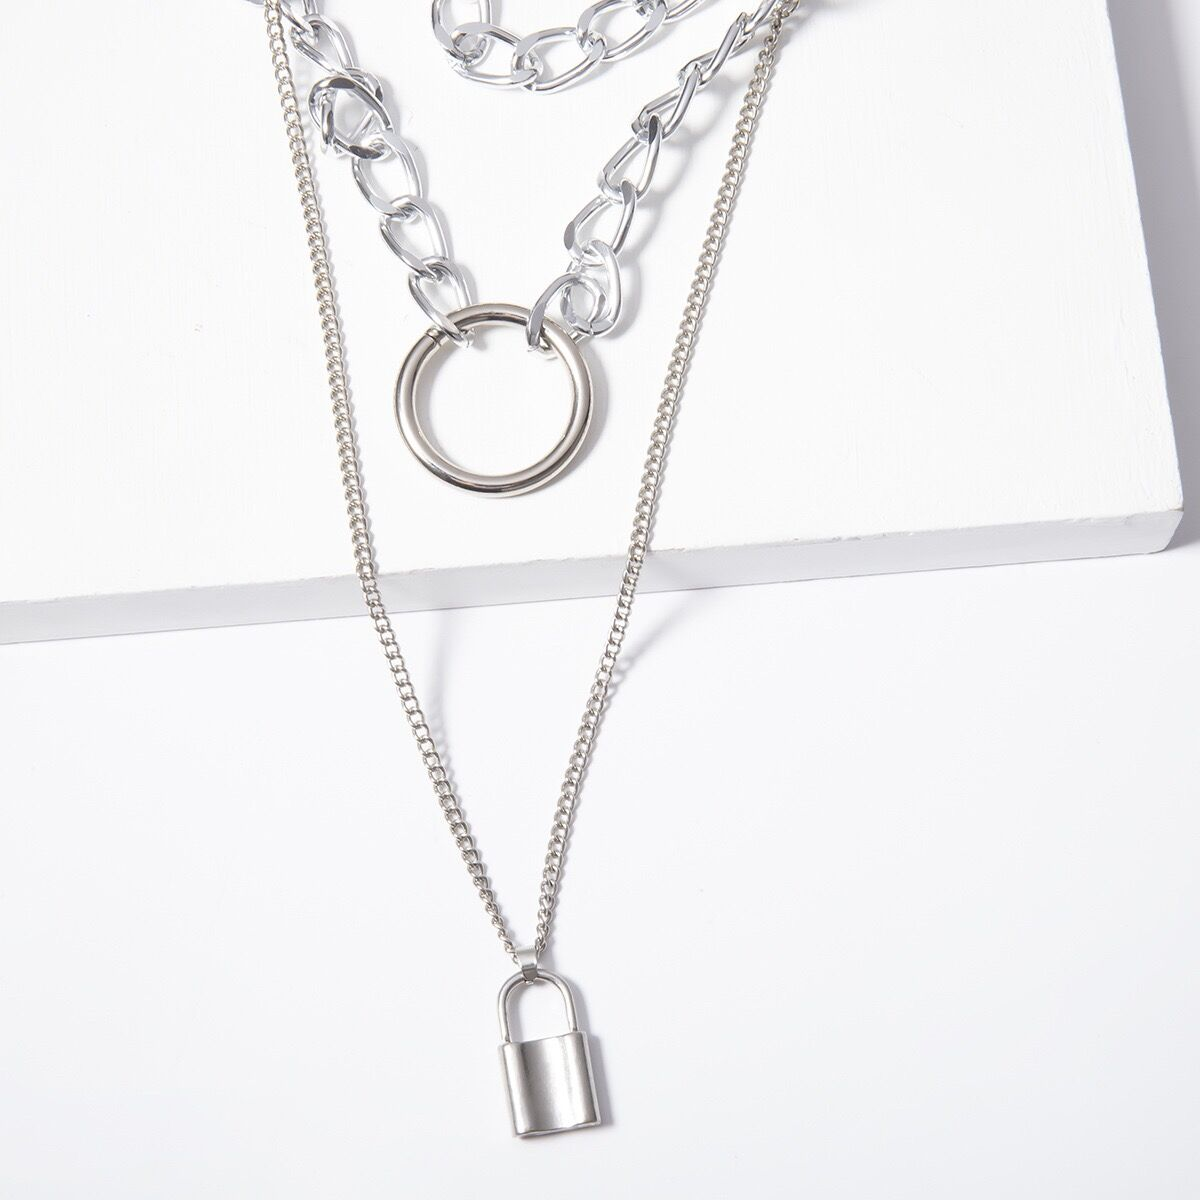 Bestkawaii-Multi-Layer-Lock-Necklace